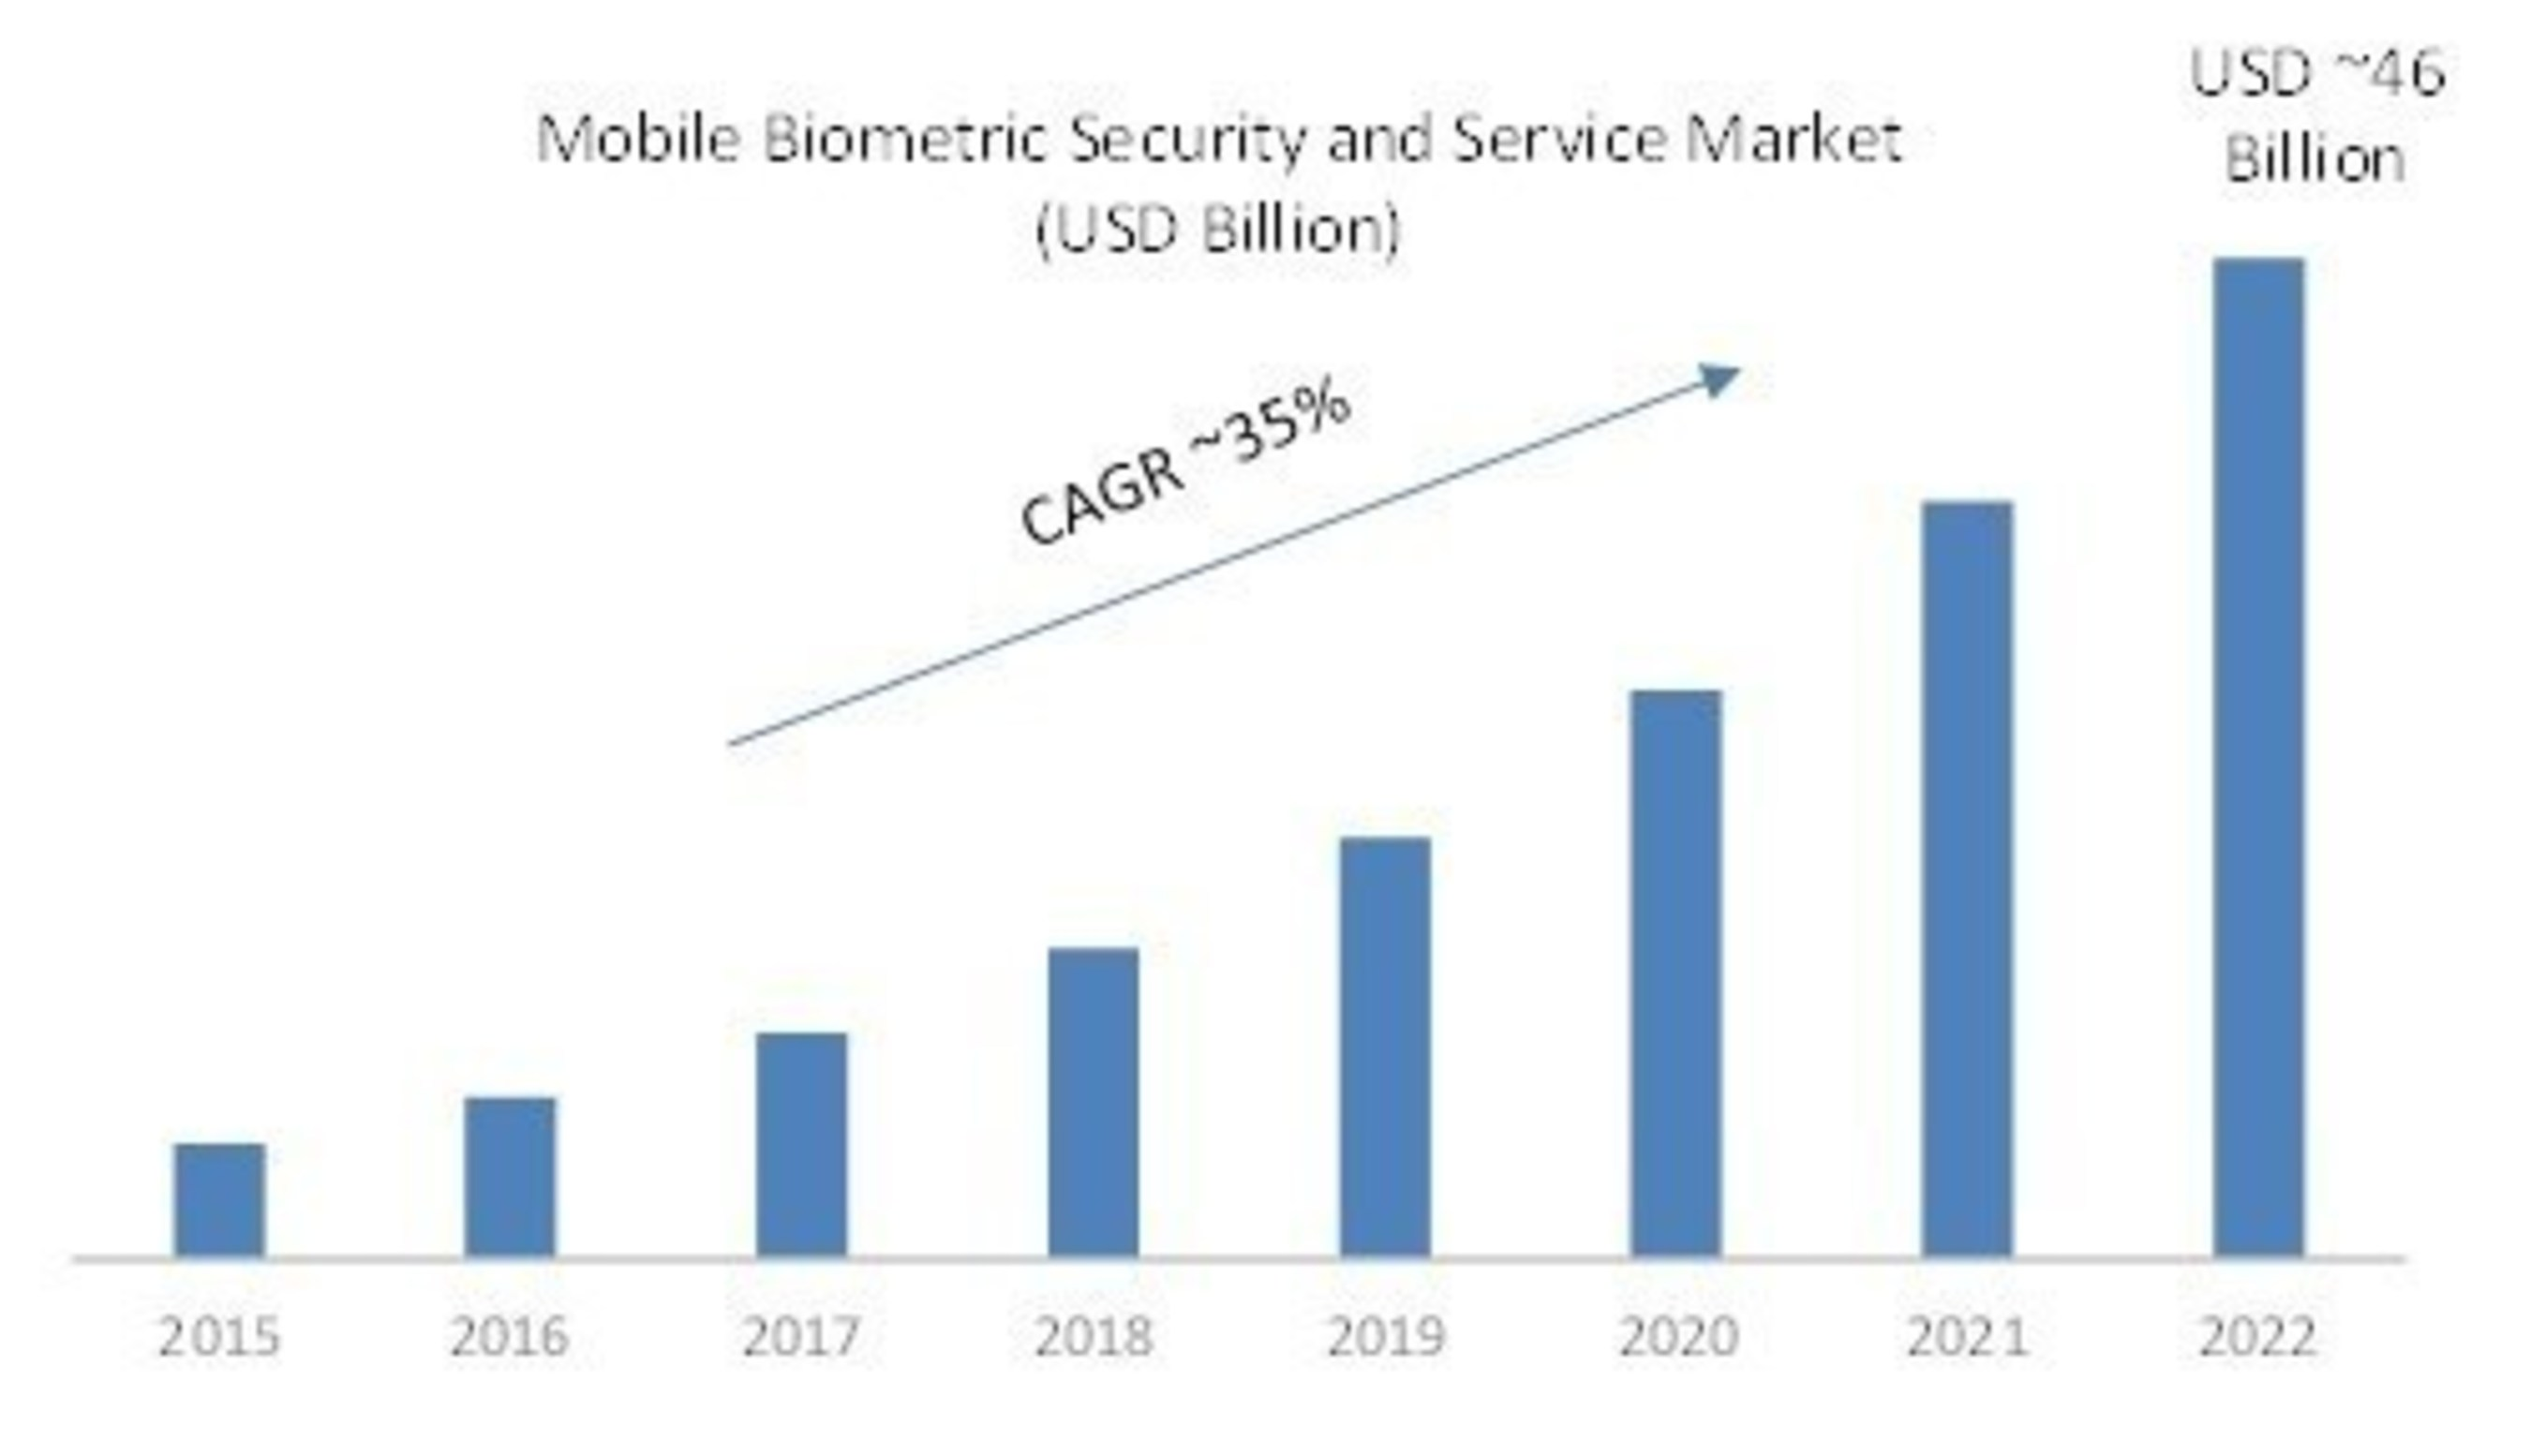 Mobile Biometric Security and Services Market Analysis by (Type, Component, Platform, Industry), Global Forecast 2016-2022